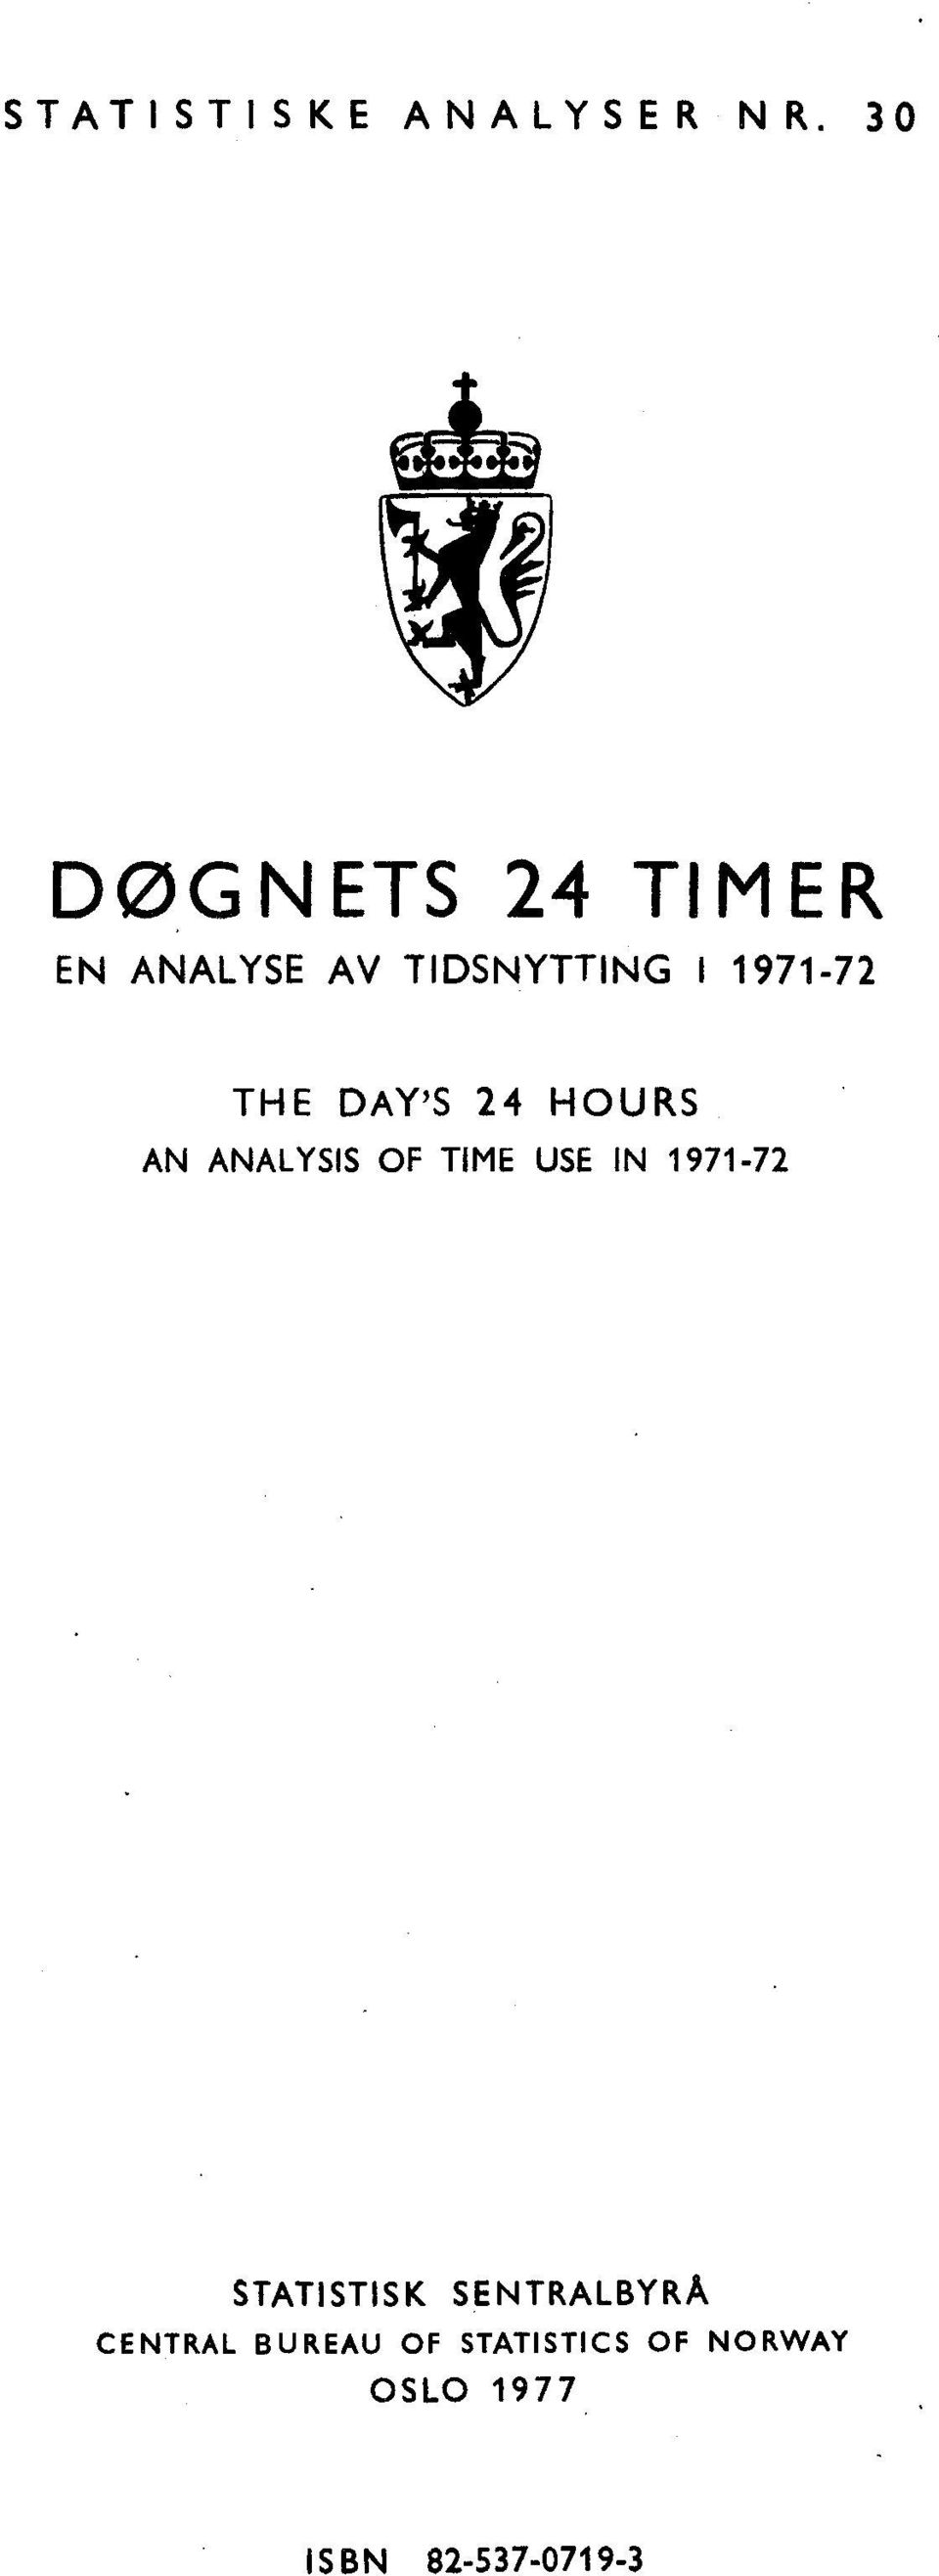 THE DAY'S 24 HOURS AN ANALYSIS OF TIME USE IN 1971-72